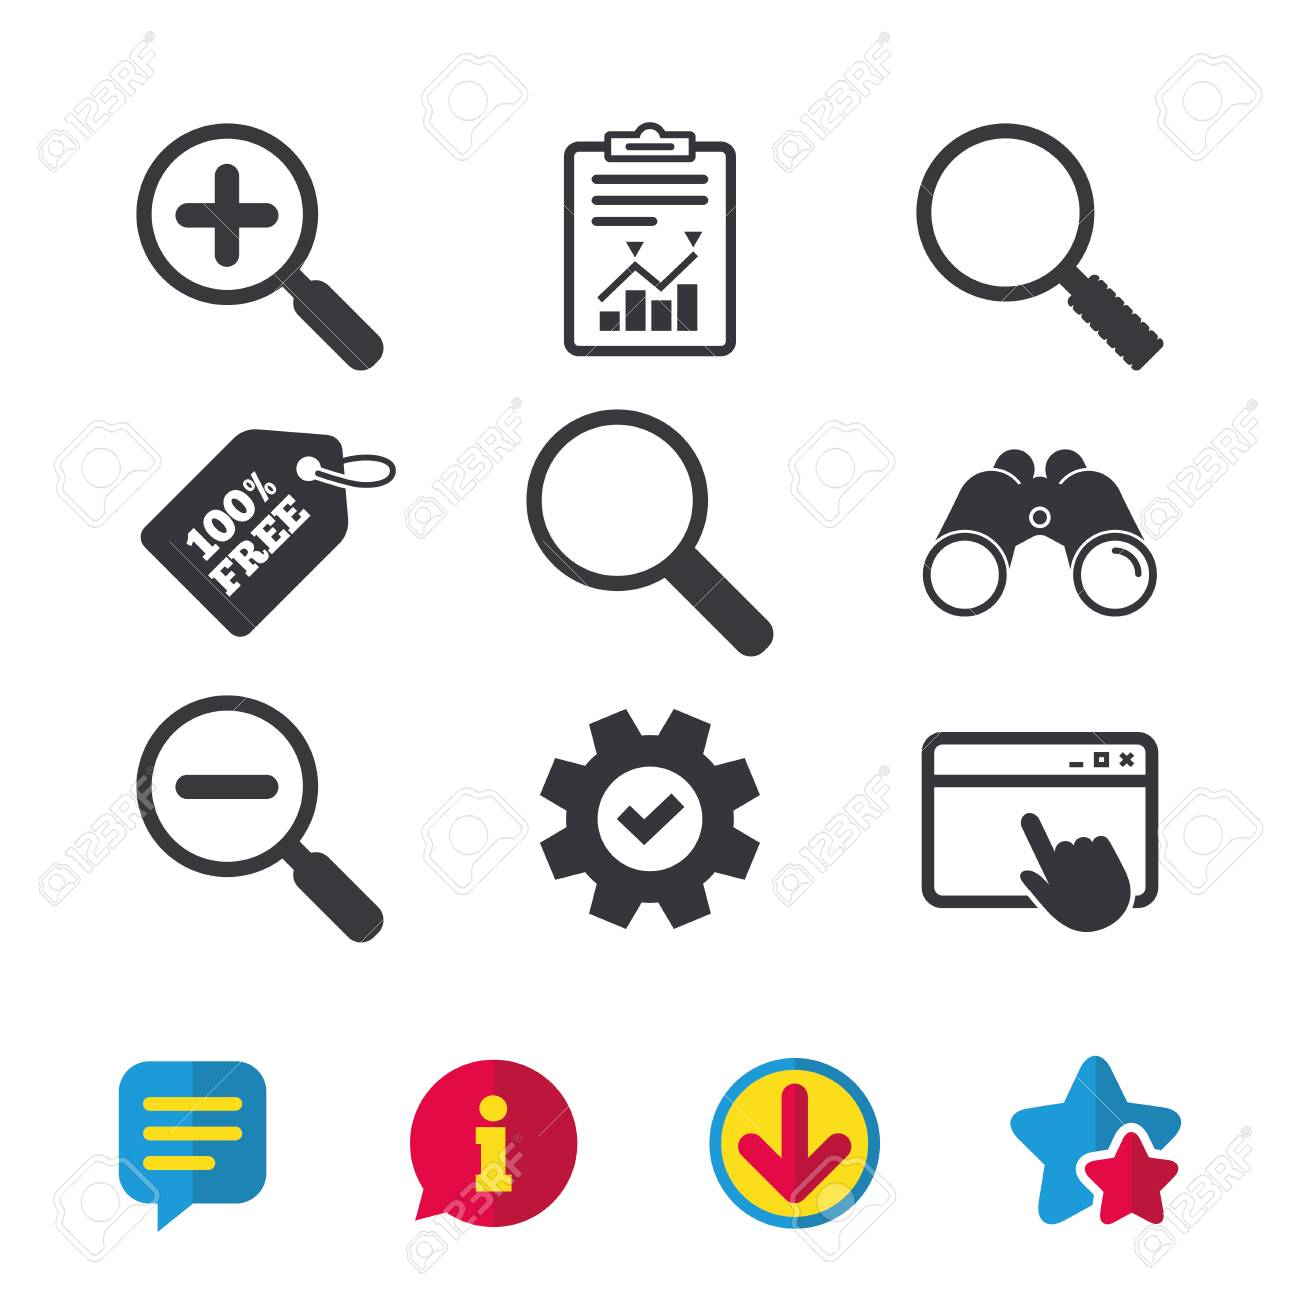 Search stock symbols gallery meaning of this symbol magnifier glass icons plus and minus zoom tool symbols search urtaz Image collections